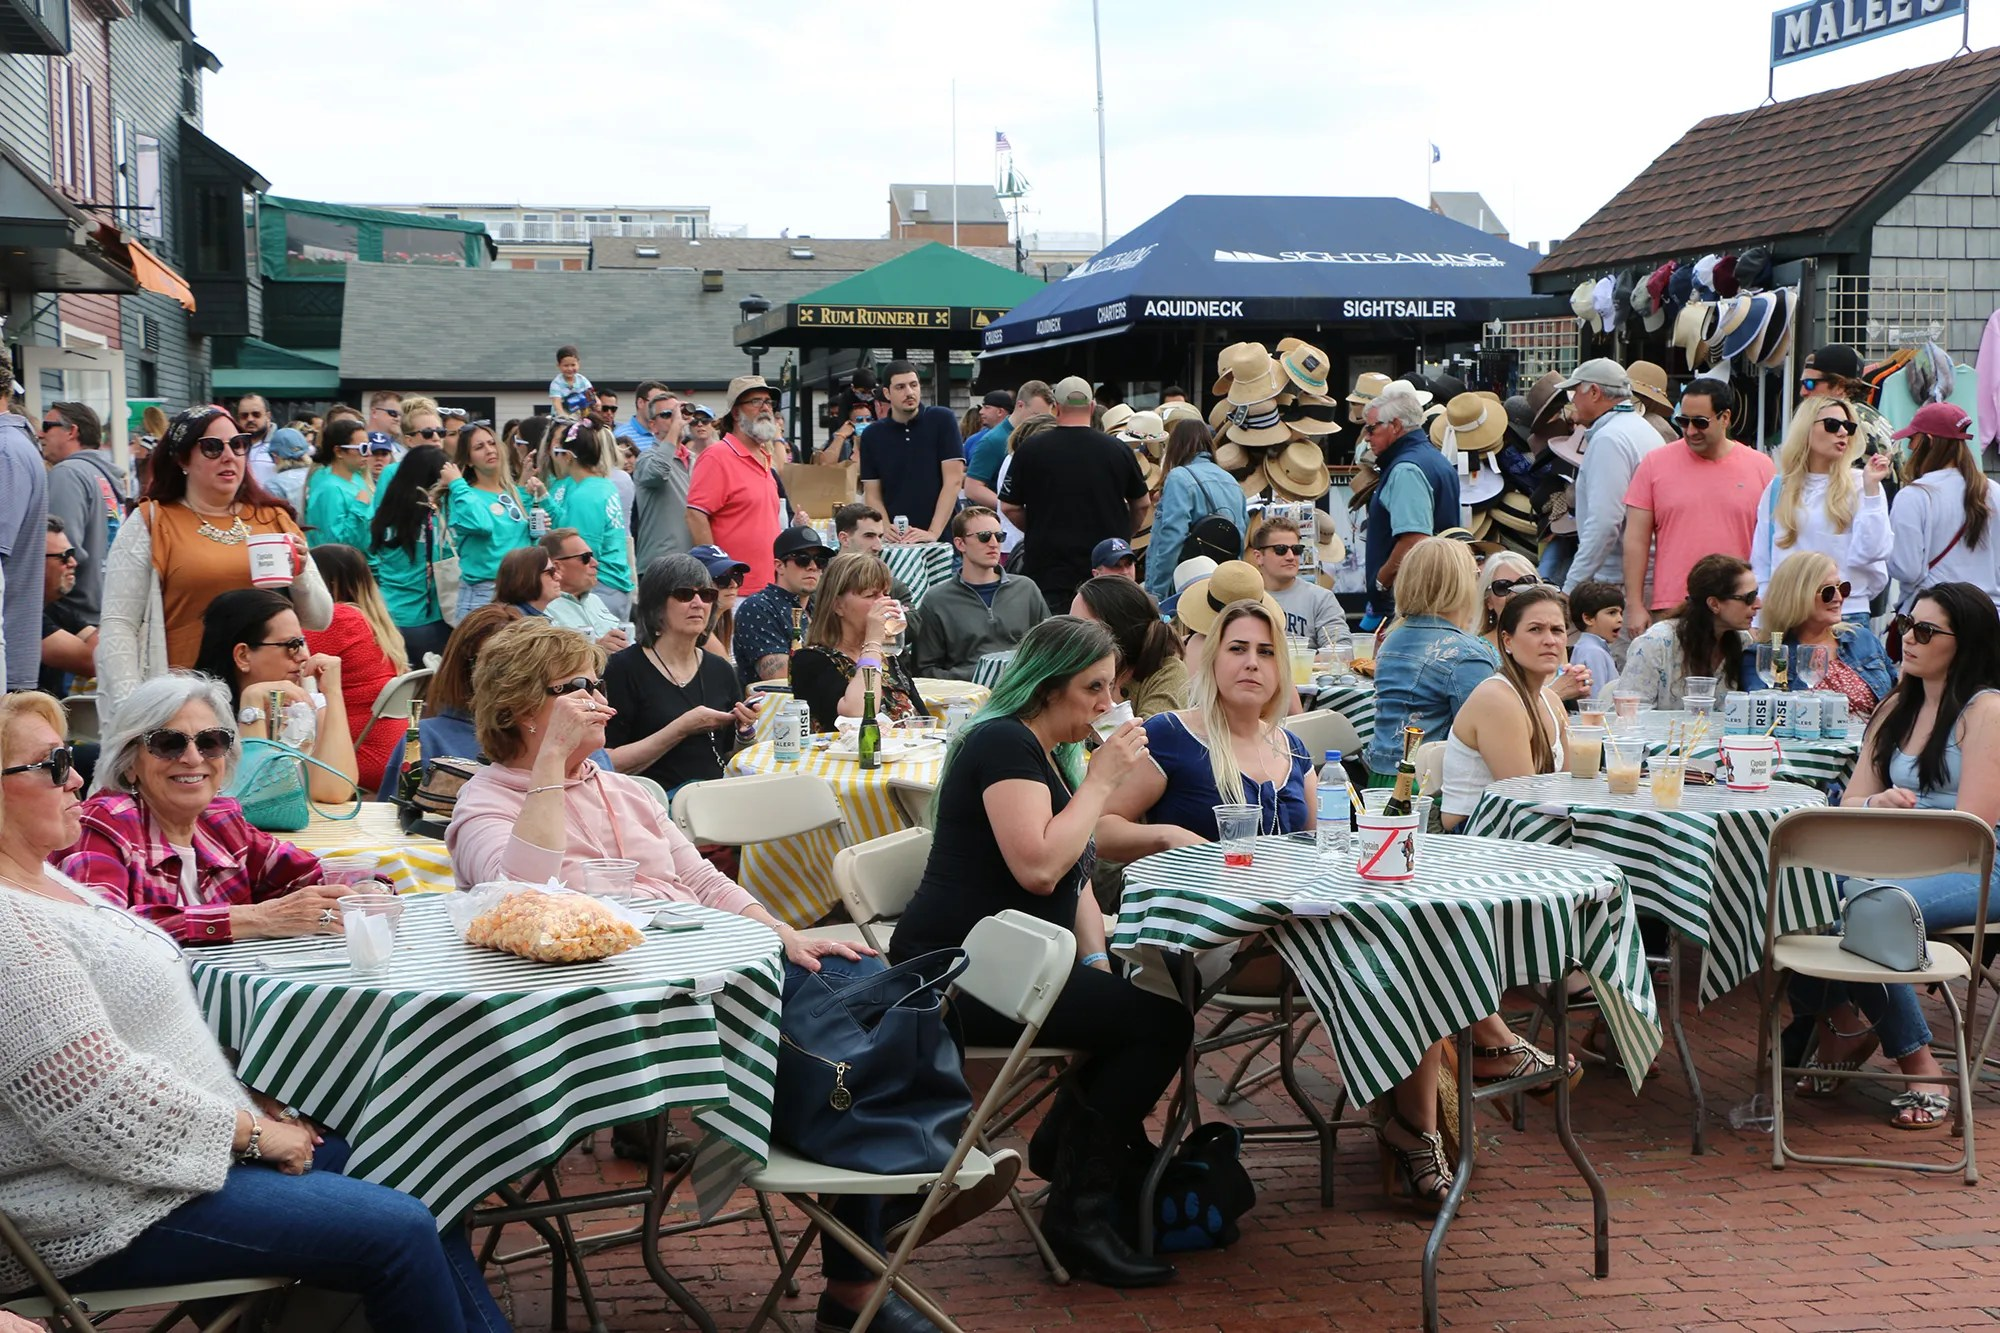 Bowen's Wharf was packed in May for the Newport Oyster & Chowder festival, the first major event in the city since the start of the COVID pandemic. Newport and state officials are looking at ways to build back tourism in the city and state.